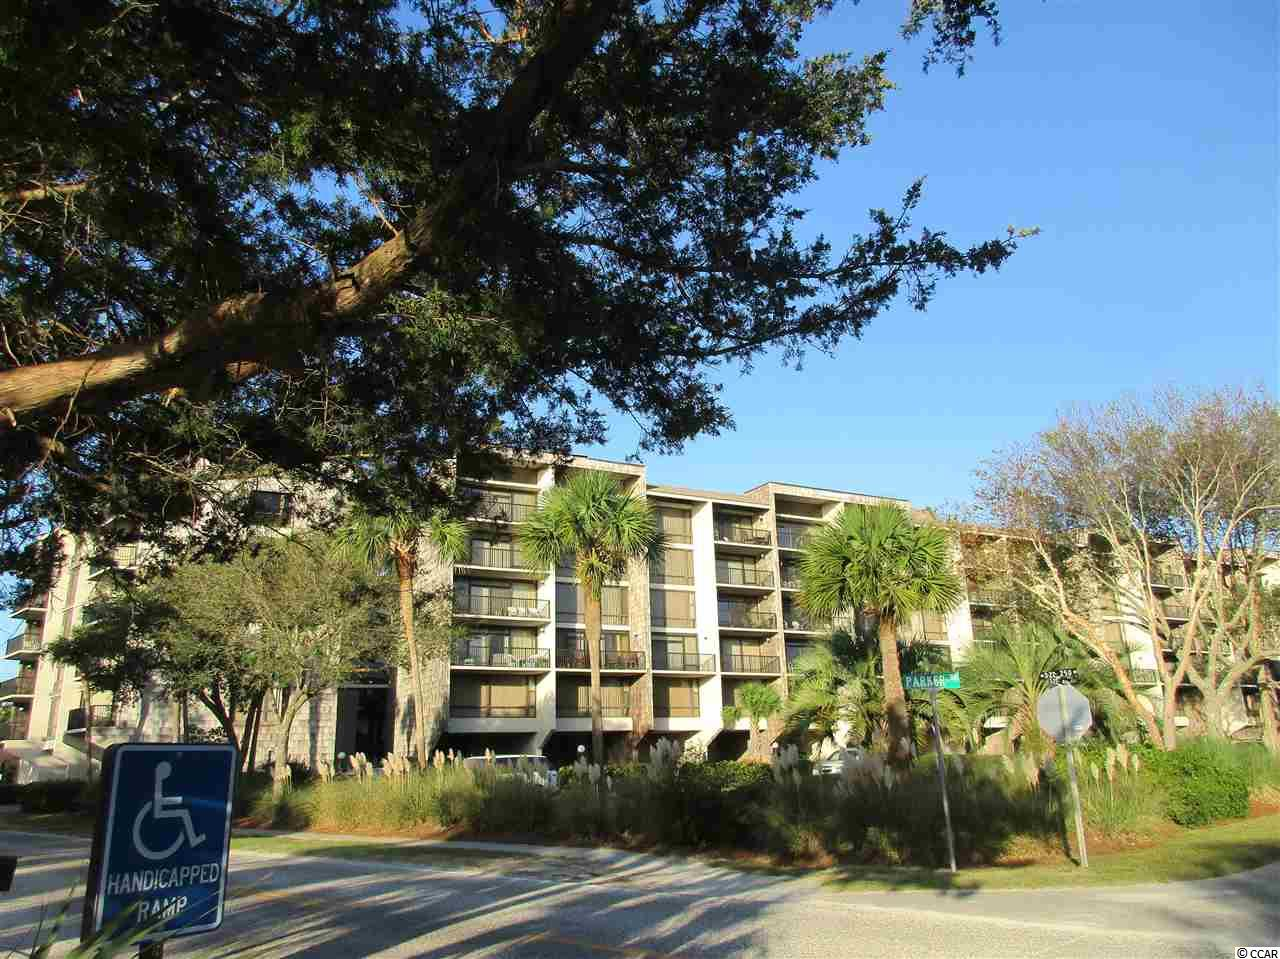 Condo / Townhome / Villa for Sale at 423 Parker 423 Parker Pawleys Island, South Carolina 29585 United States